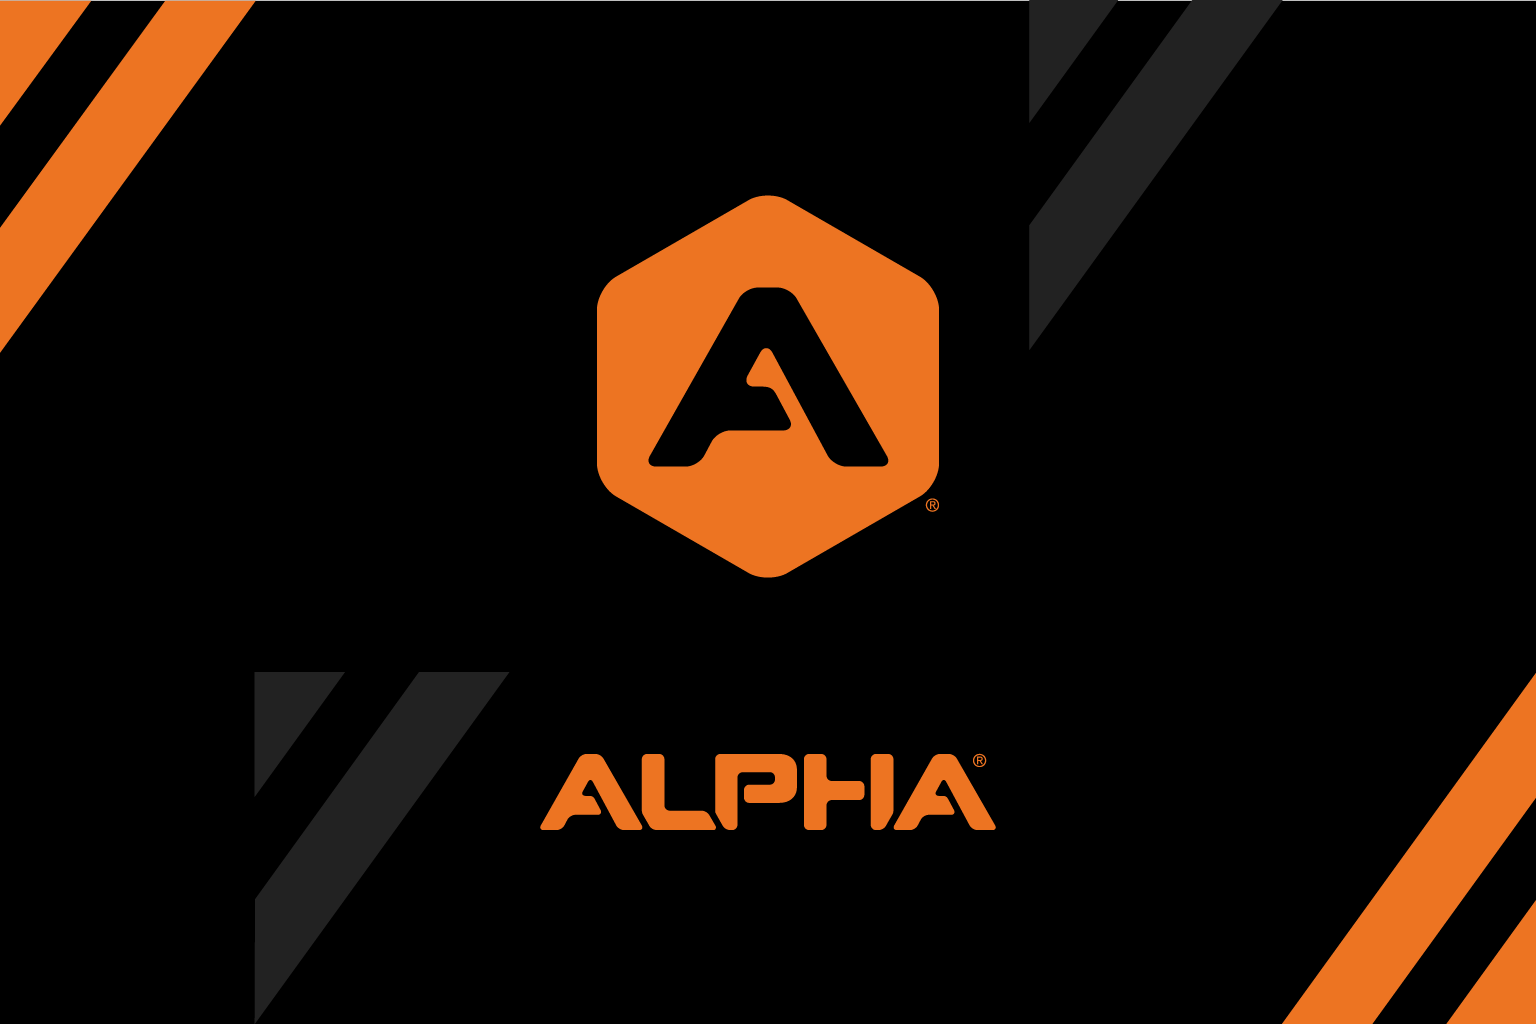 A graphic illustration of the Alpha logo in black and orange